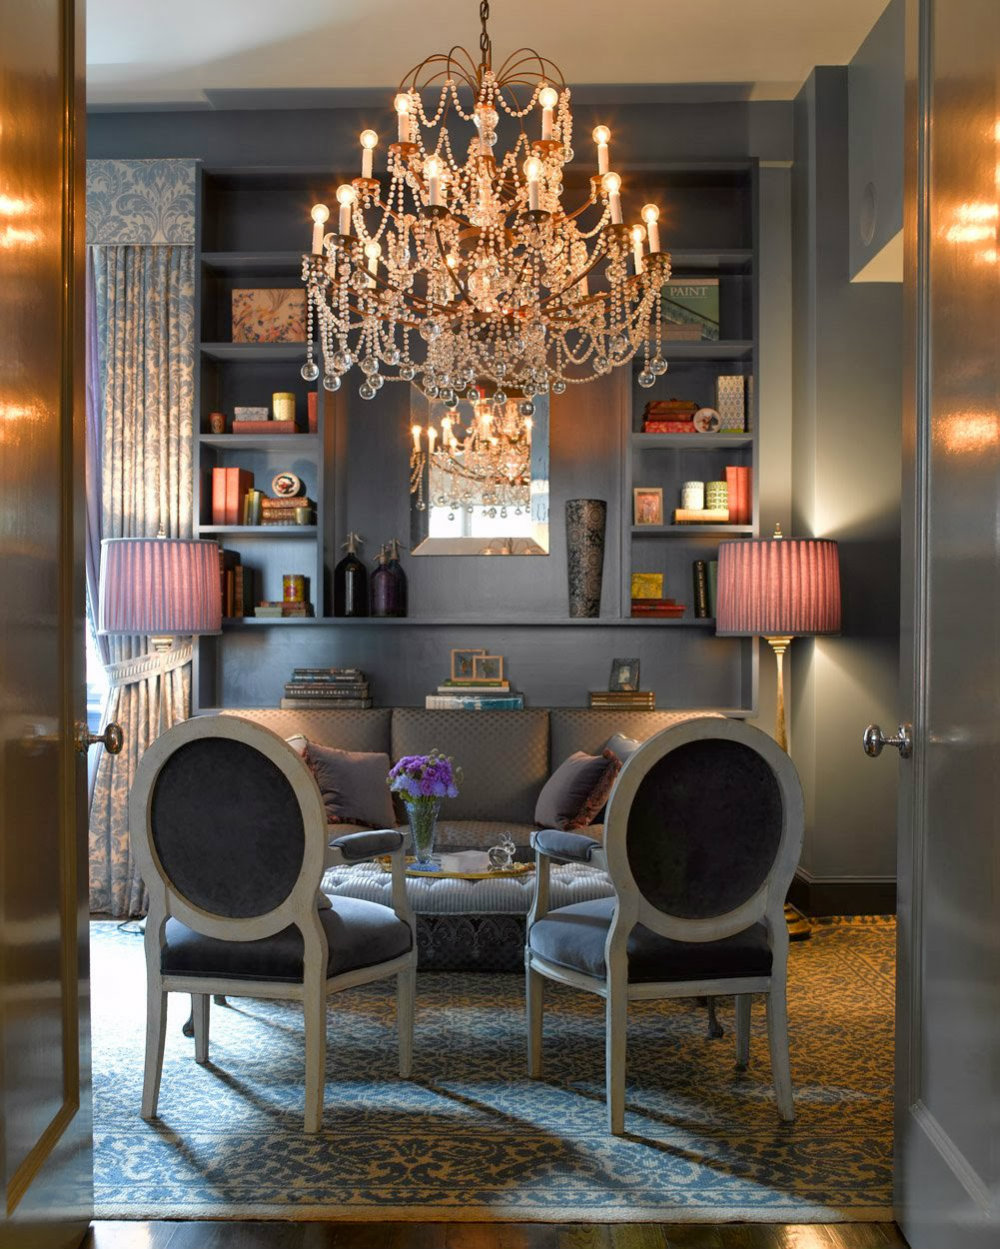 5 Crystal Chandeliers To Elevate Your Interiors Vega Home London's Design: Interview with Vega Home 5 Crystal Chandeliers To Elevate Your Interiors 01 Vega Home London's Design: Interview with Vega Home 5 Crystal Chandeliers To Elevate Your Interiors 01